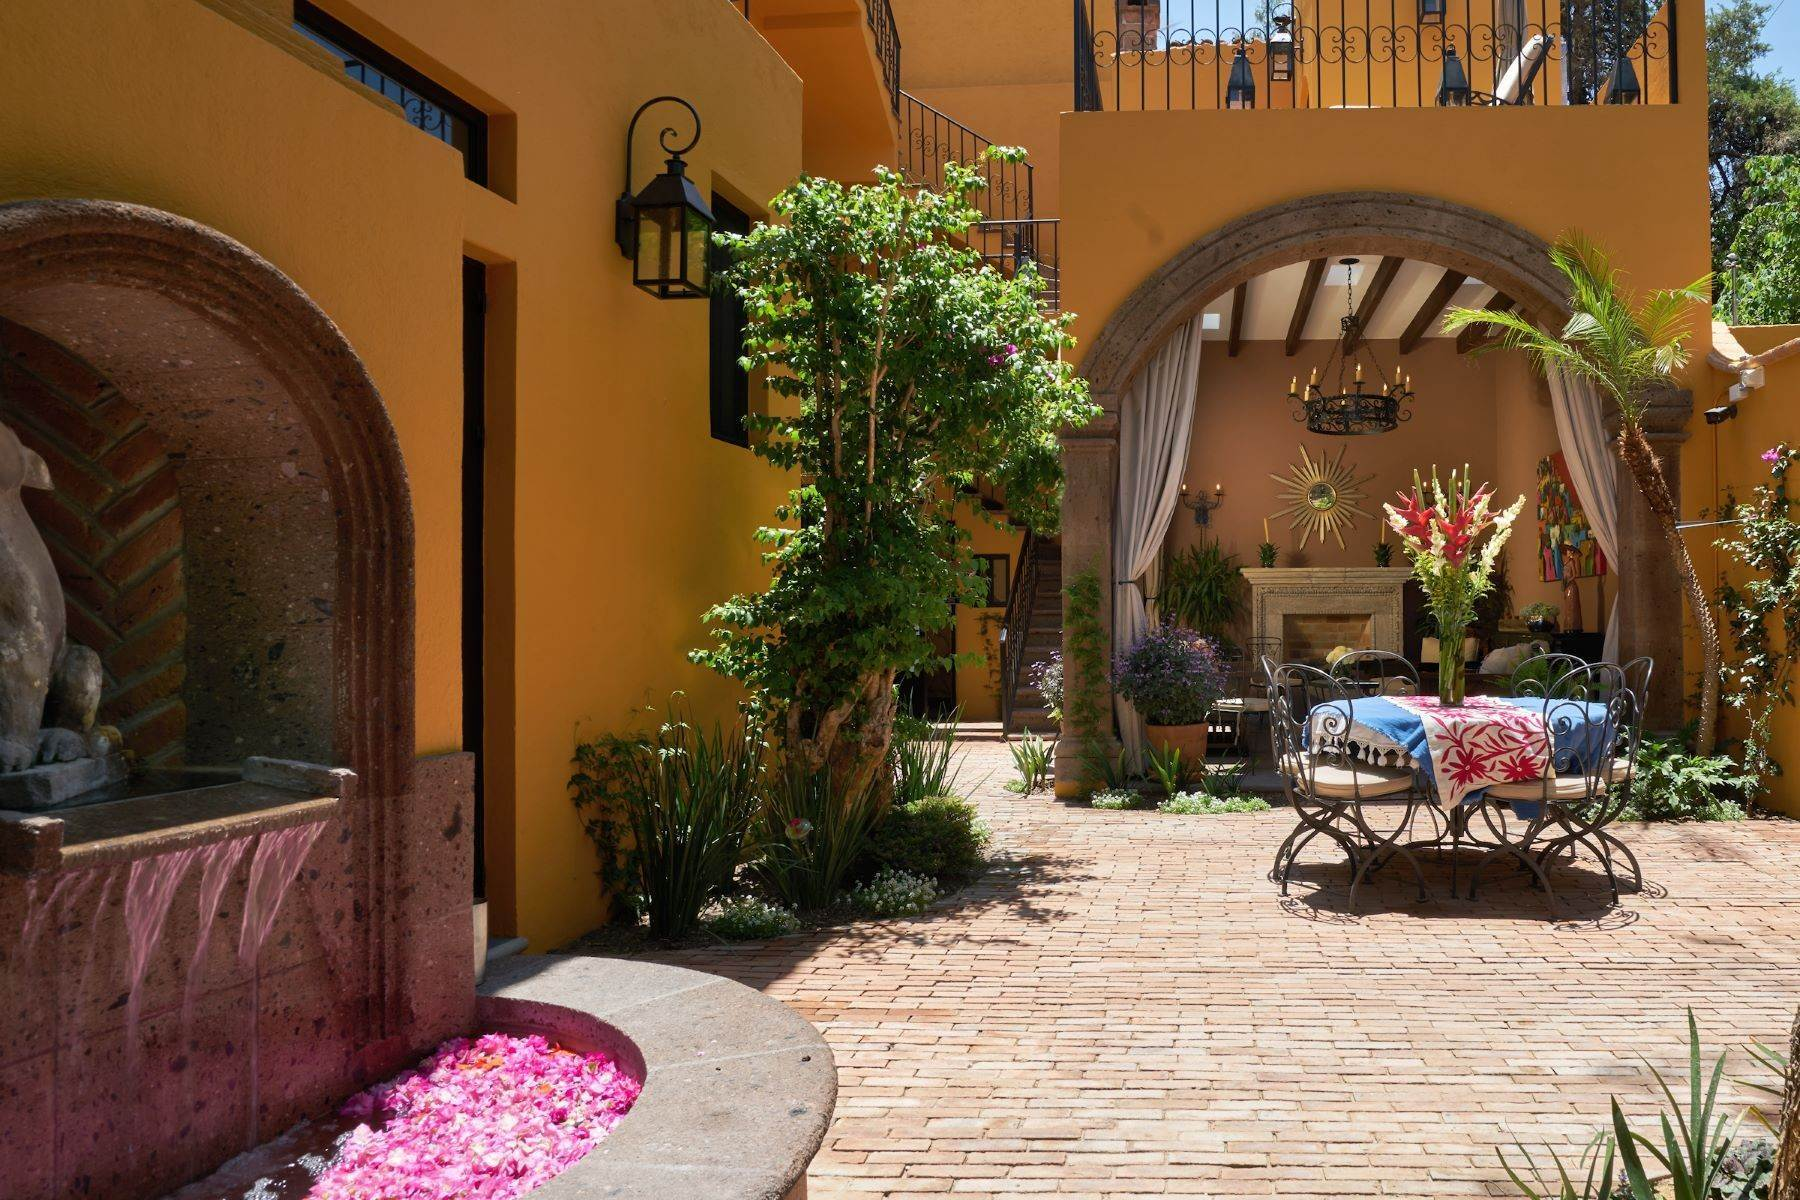 3. Single Family Homes for Sale at Casa Escuela Bilingue Cerrada de Zacateros 5 San Miguel De Allende, Guanajuato 37700 Mexico